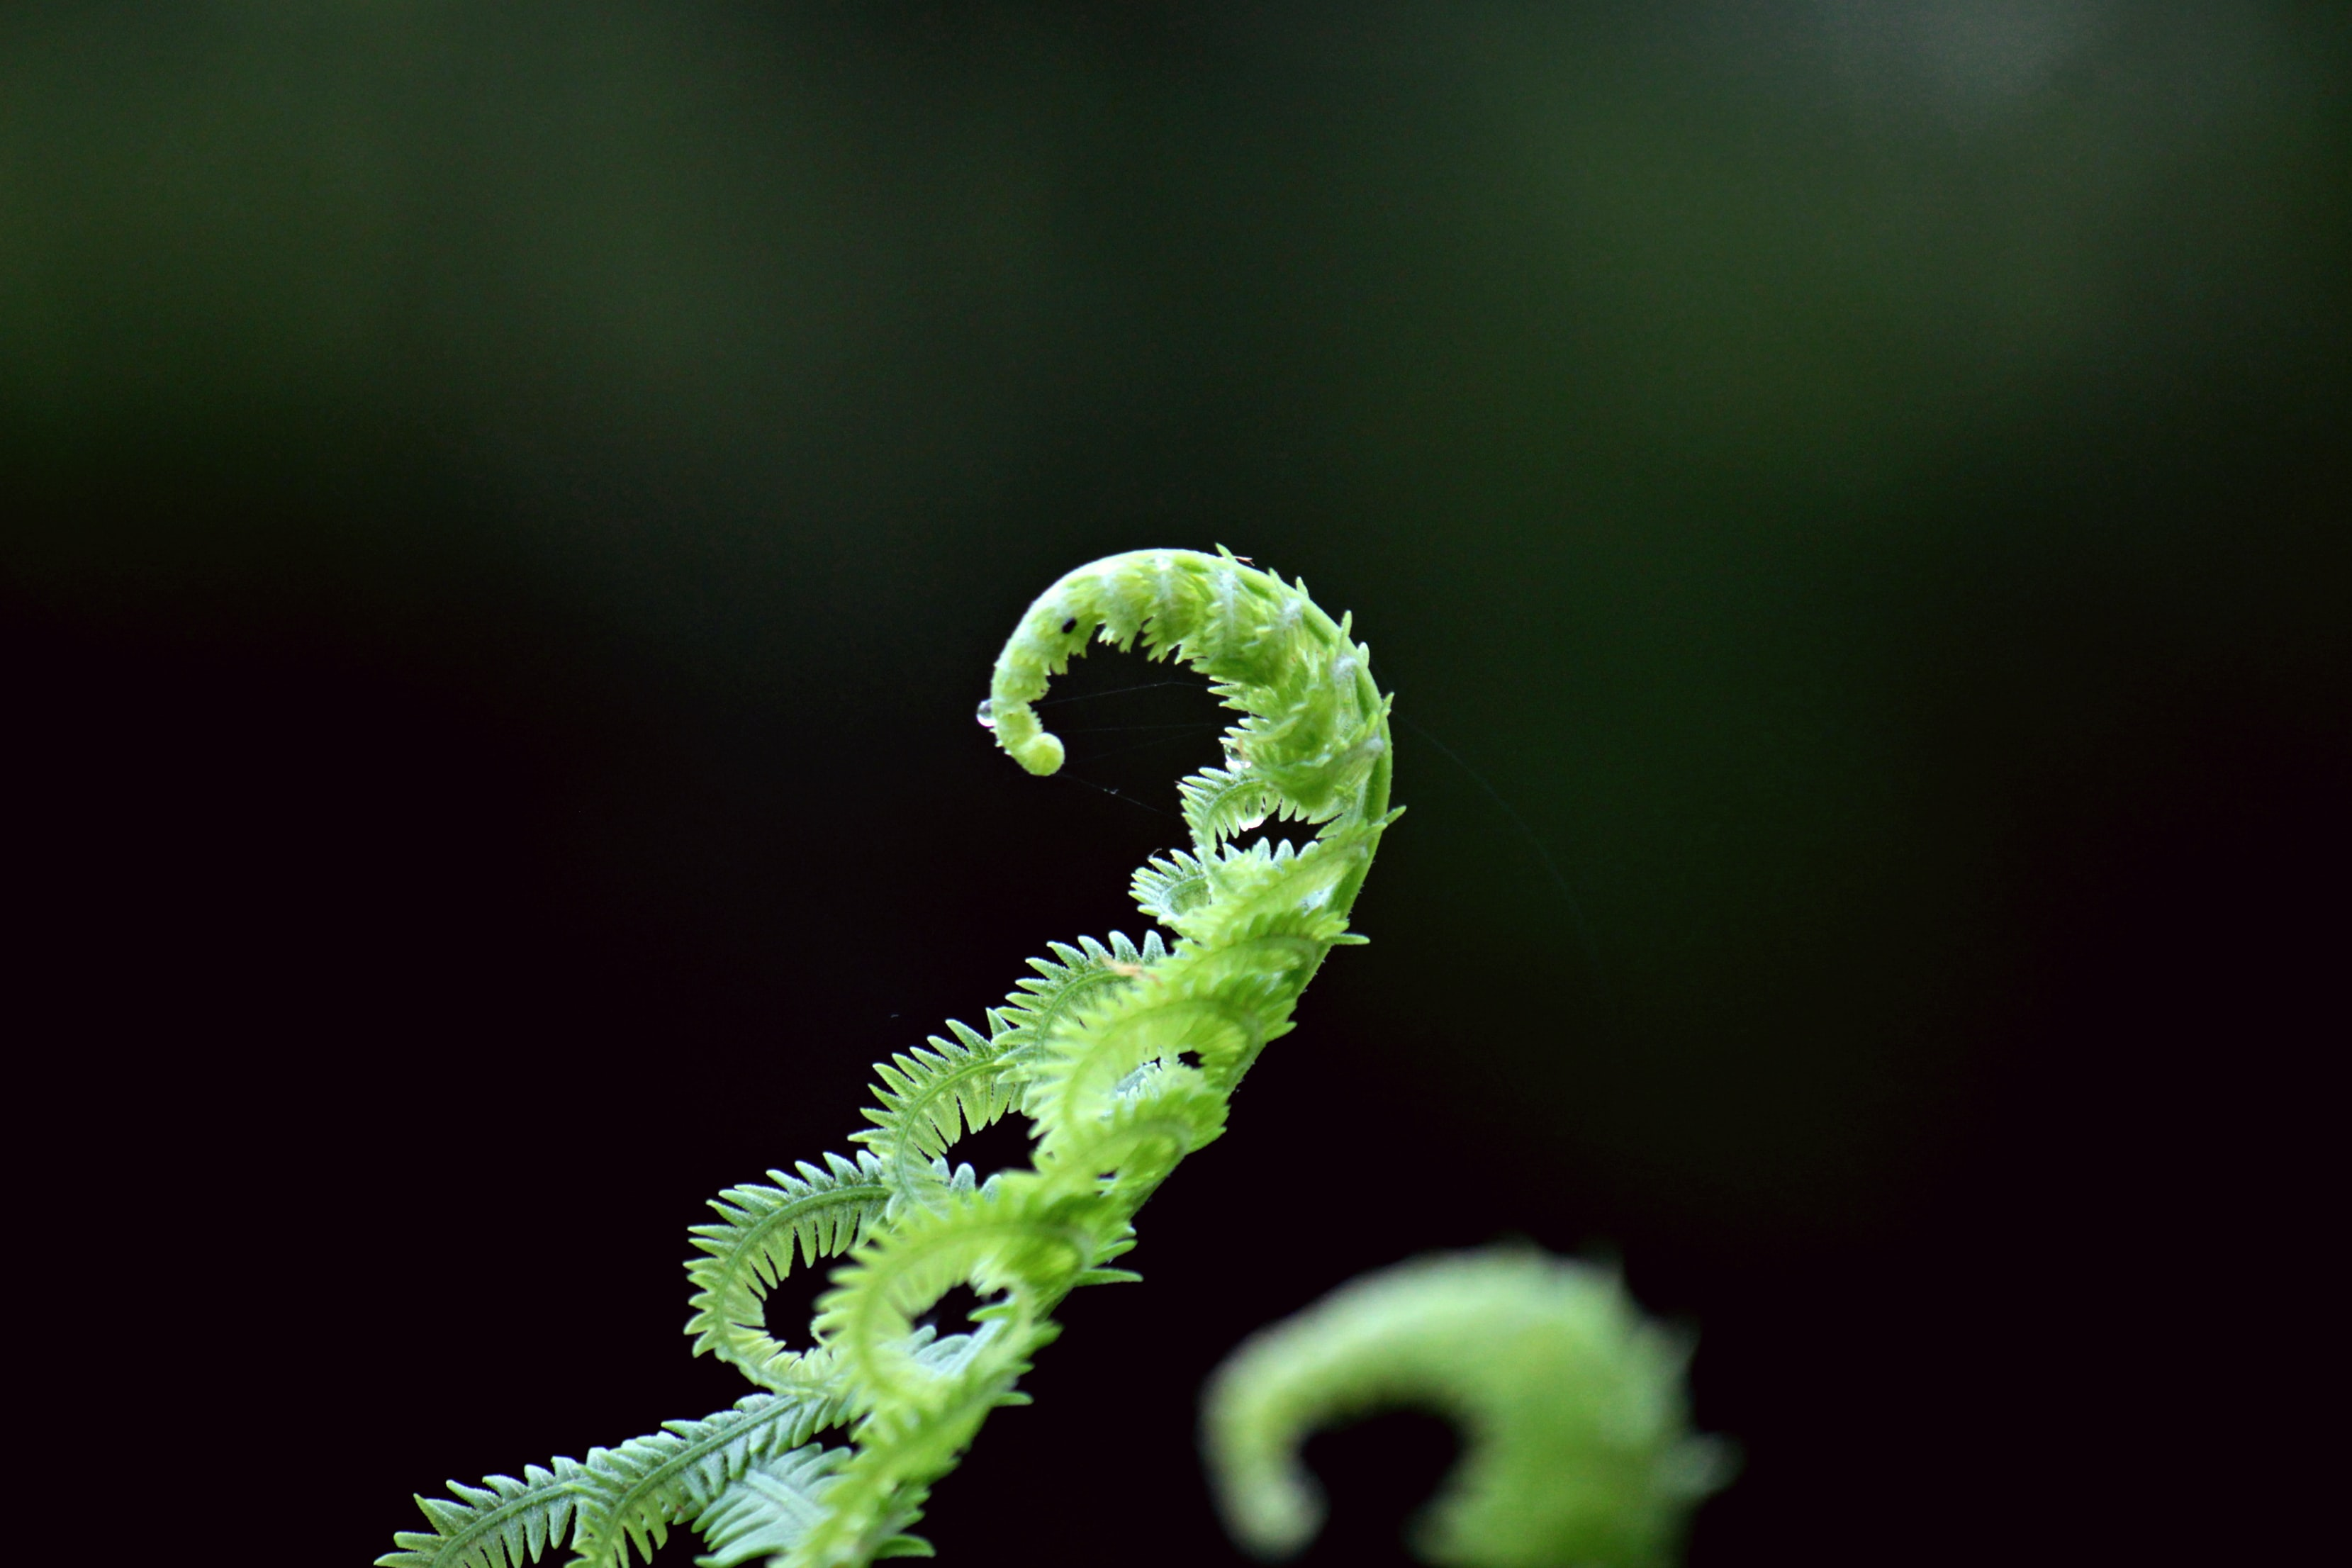 green fern plant in selective focus photograhpy